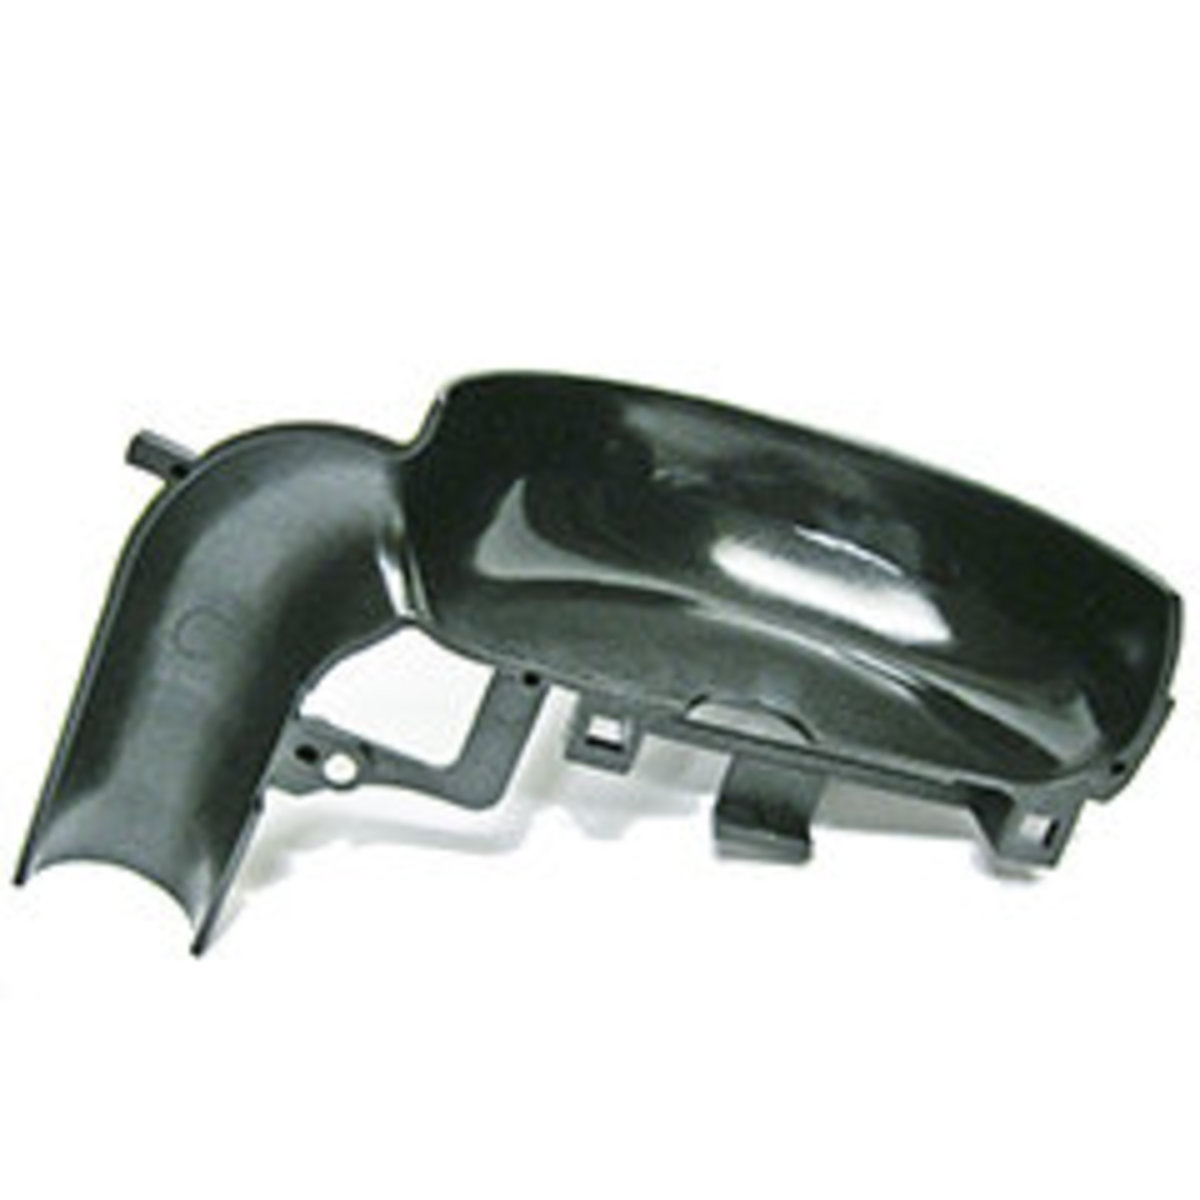 View larger image of Valken V-Max Paintball Loader Part P0004 - Right Cup